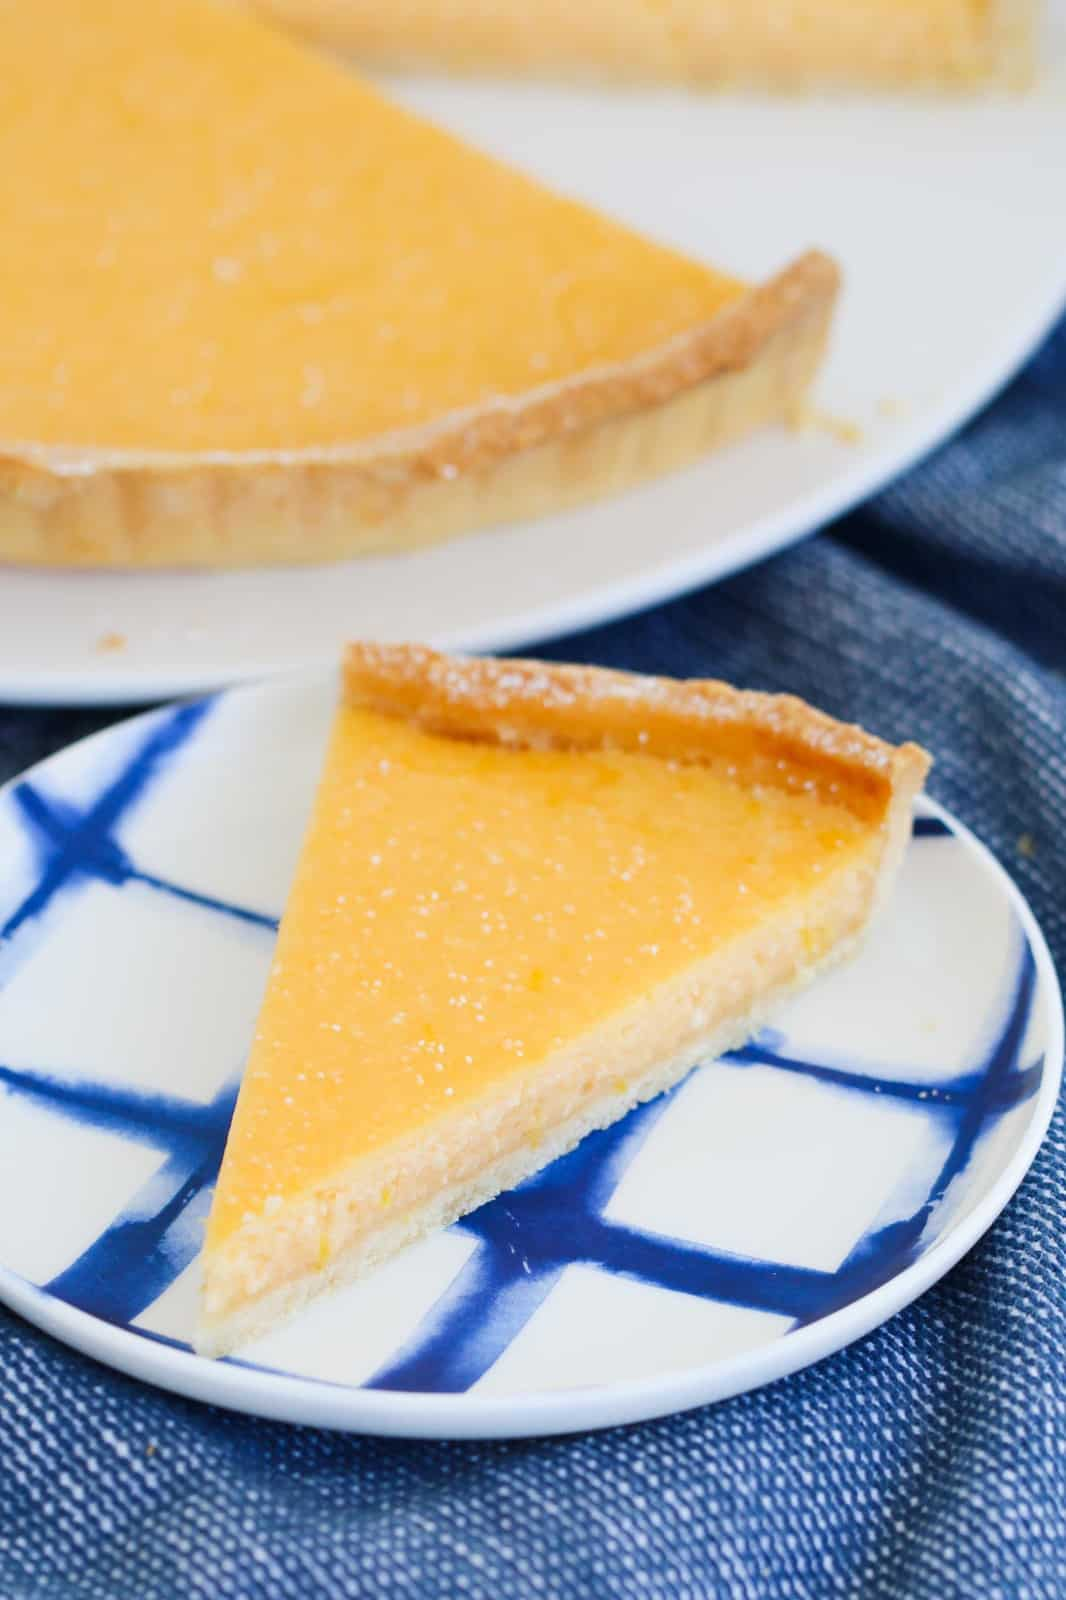 A slice of lemon tart on a blue and white plate.